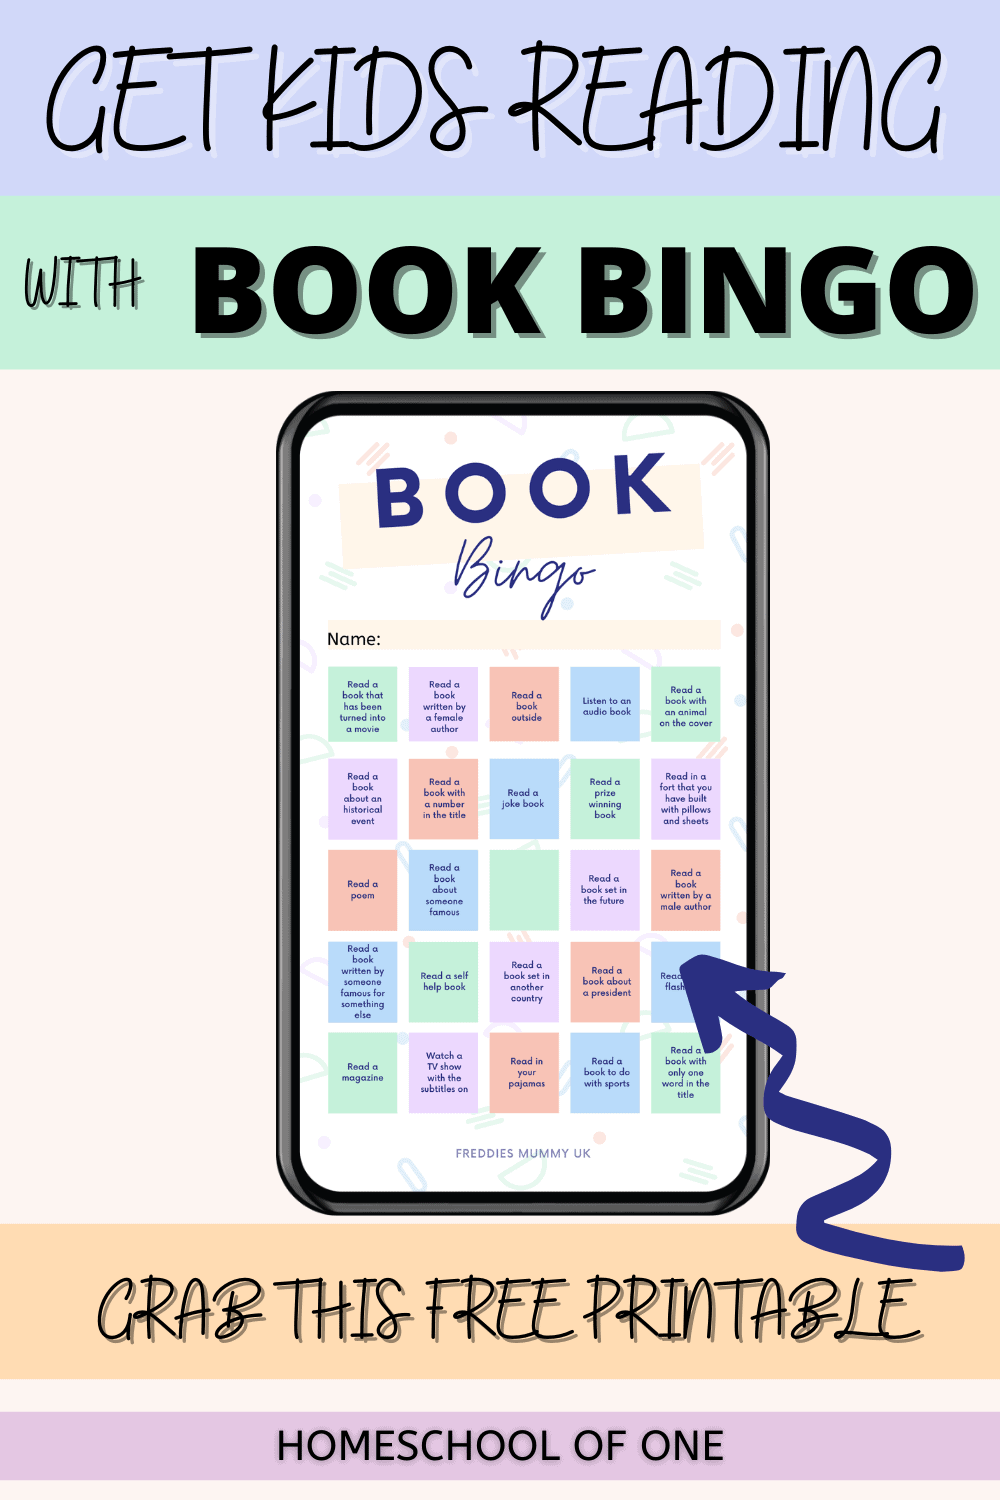 Book Bingo game perfect for getting the kids reading more!